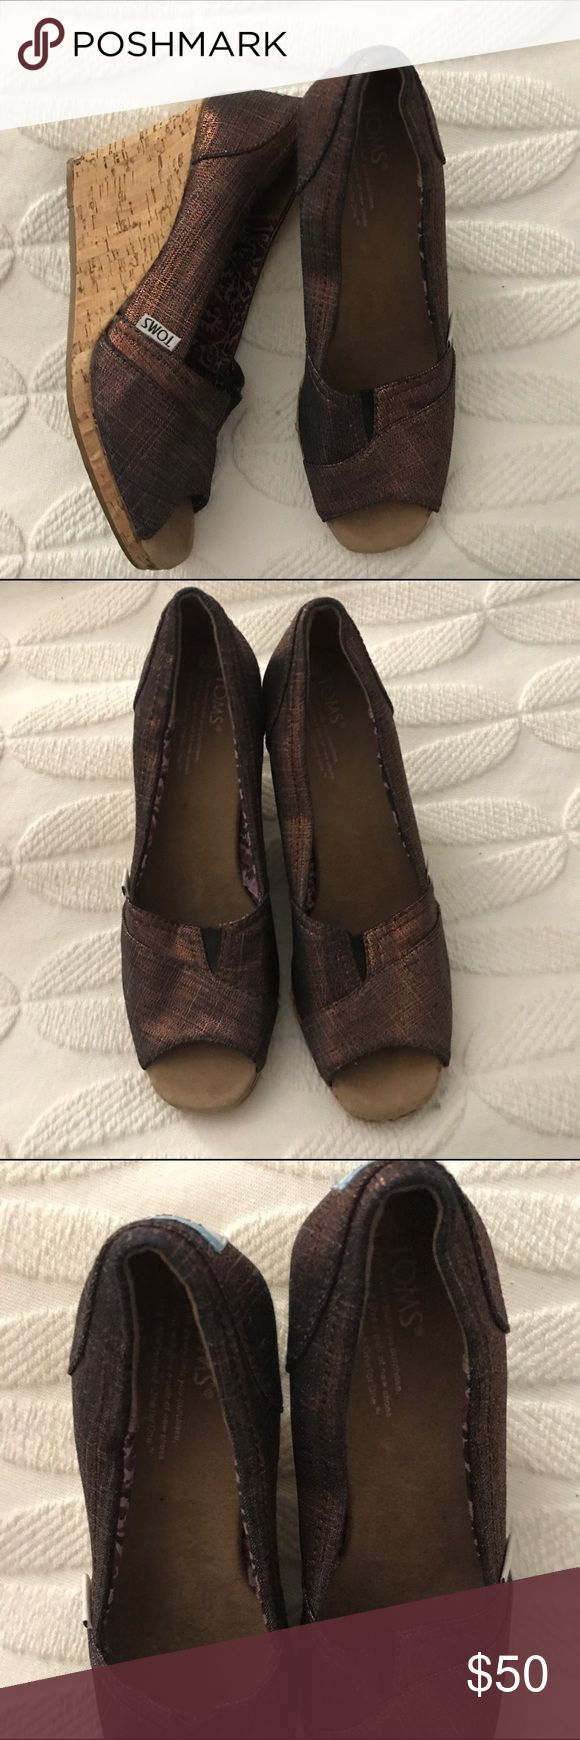 Toms metallic Wednesday Size 7.5 new Toms peep toe metallic wedges - size 7.5 - never worn (no sticker or box though) TOMS Shoes Wedges